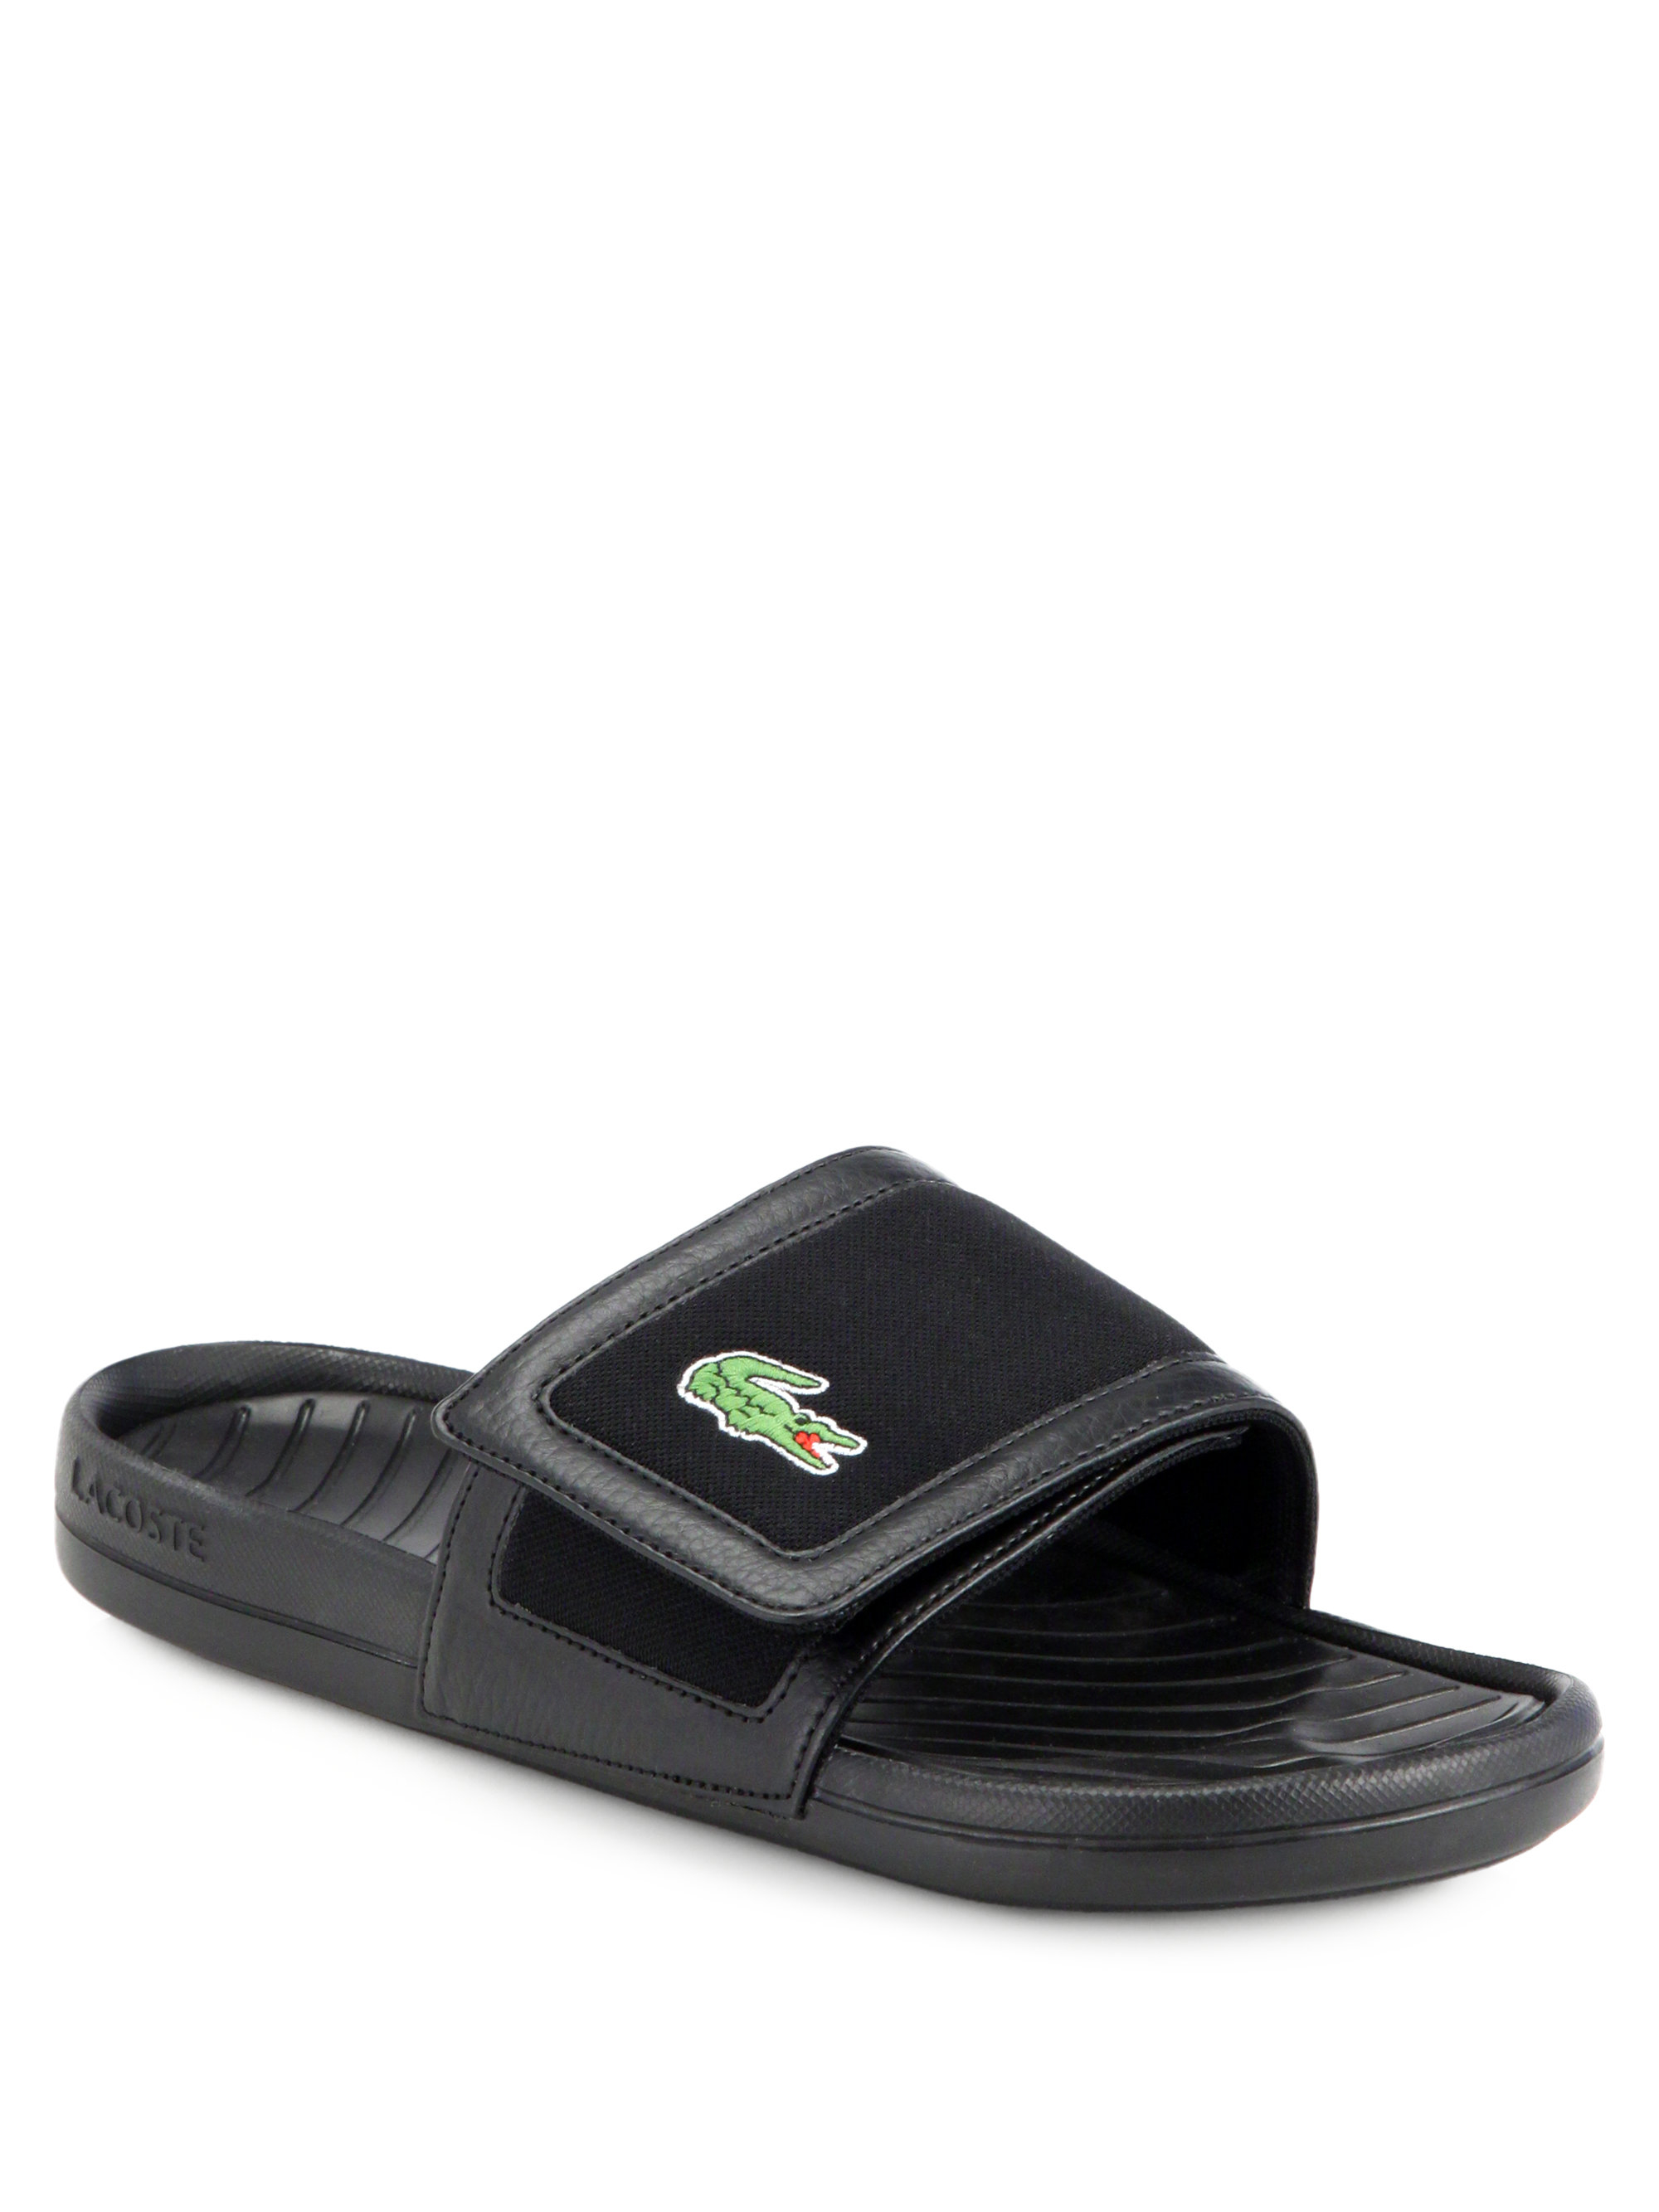 3cbbd740232 Lyst - Lacoste Velcro Sandals in Black for Men